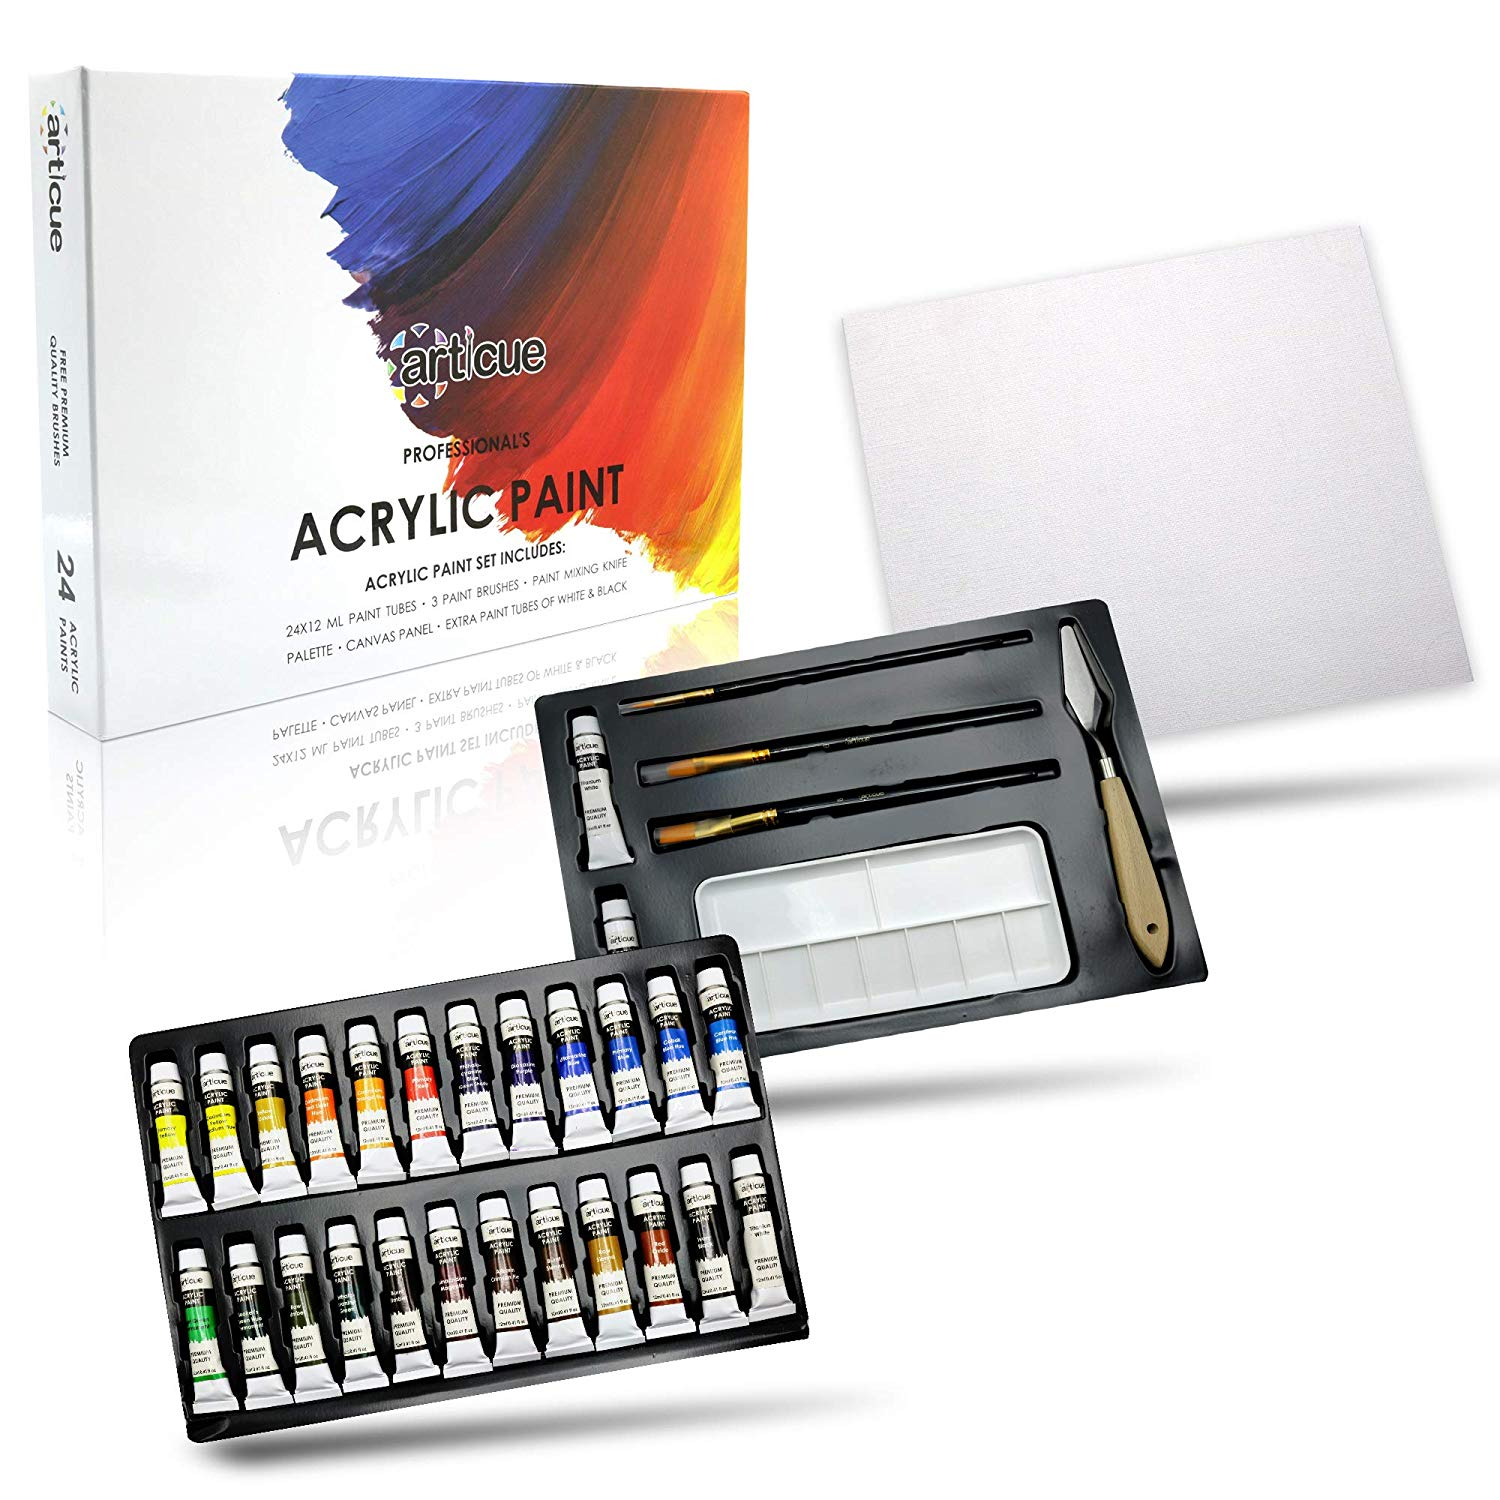 Acrylic Paint Set by Articue - 24x12ml Tubes with FREE 3 Brushes,2 EXTRA Paints,a Palette,Art Knife & Canvas Panel.Rich Pigment.Complete Starter Canvas Painting Kit For Kids,Beginners,Adults & Artists